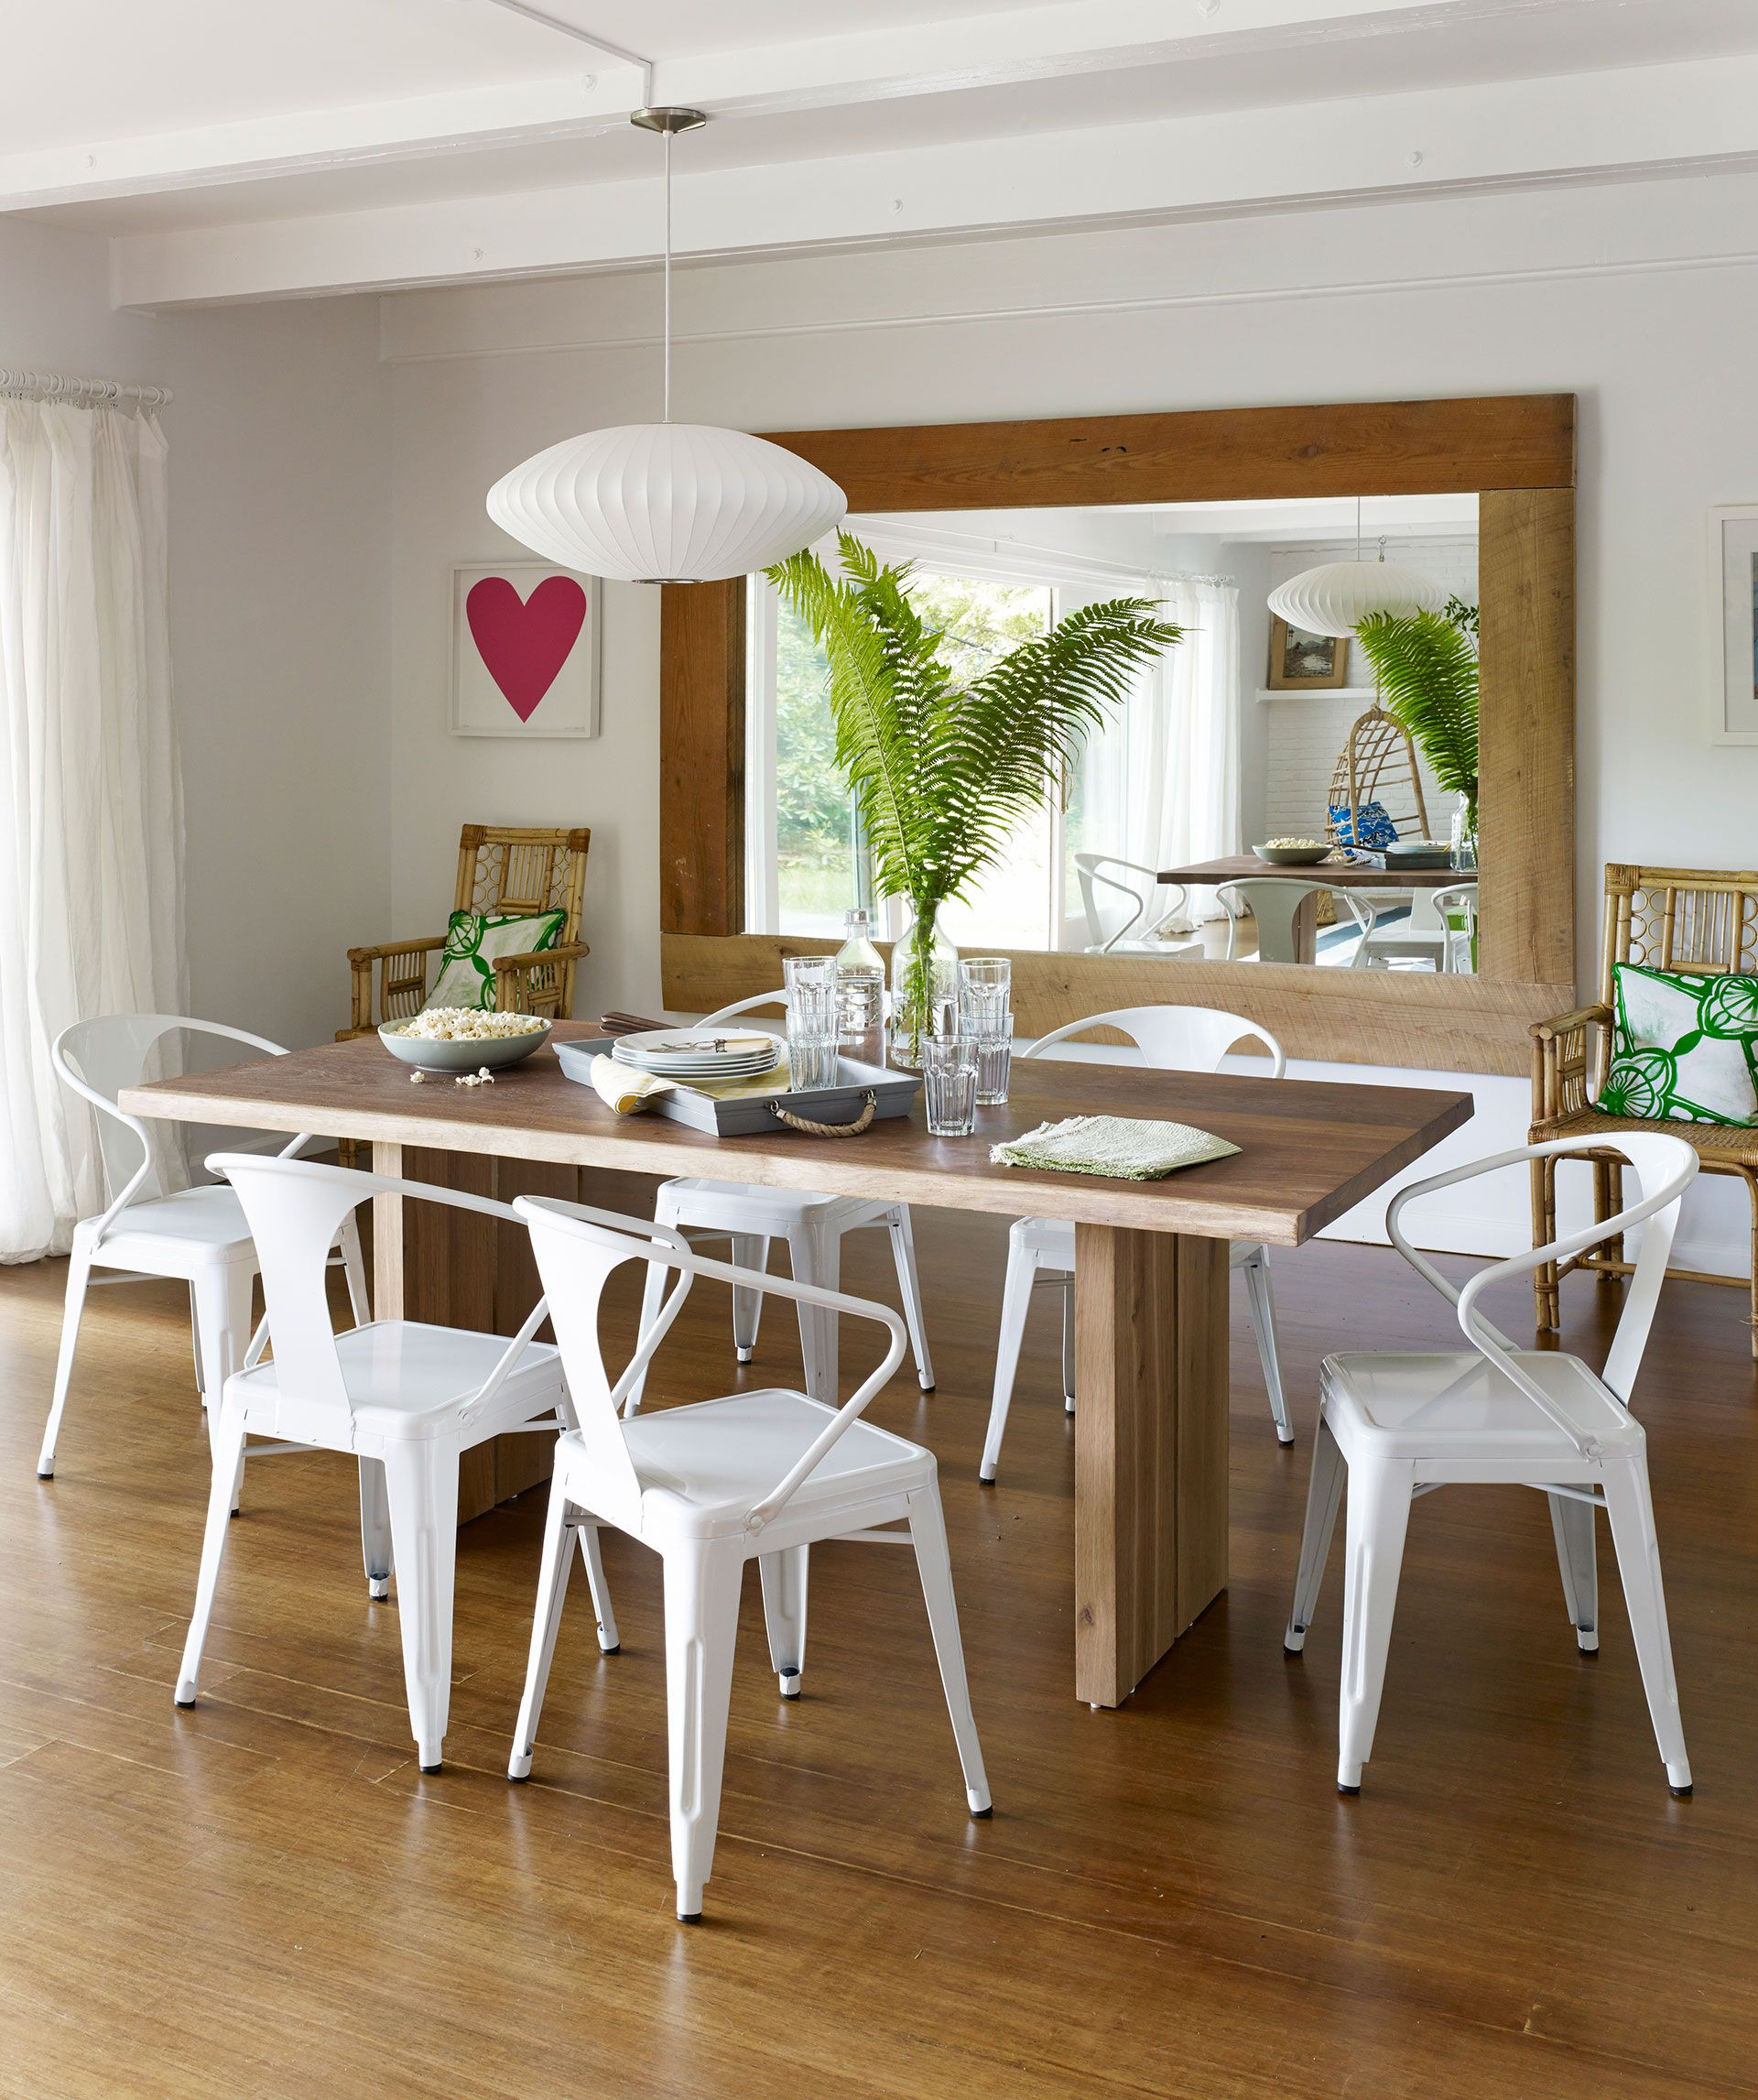 Casual Dining Room Decor Ideas: Revamp Your Dining Room With These Gorgeous Decorating